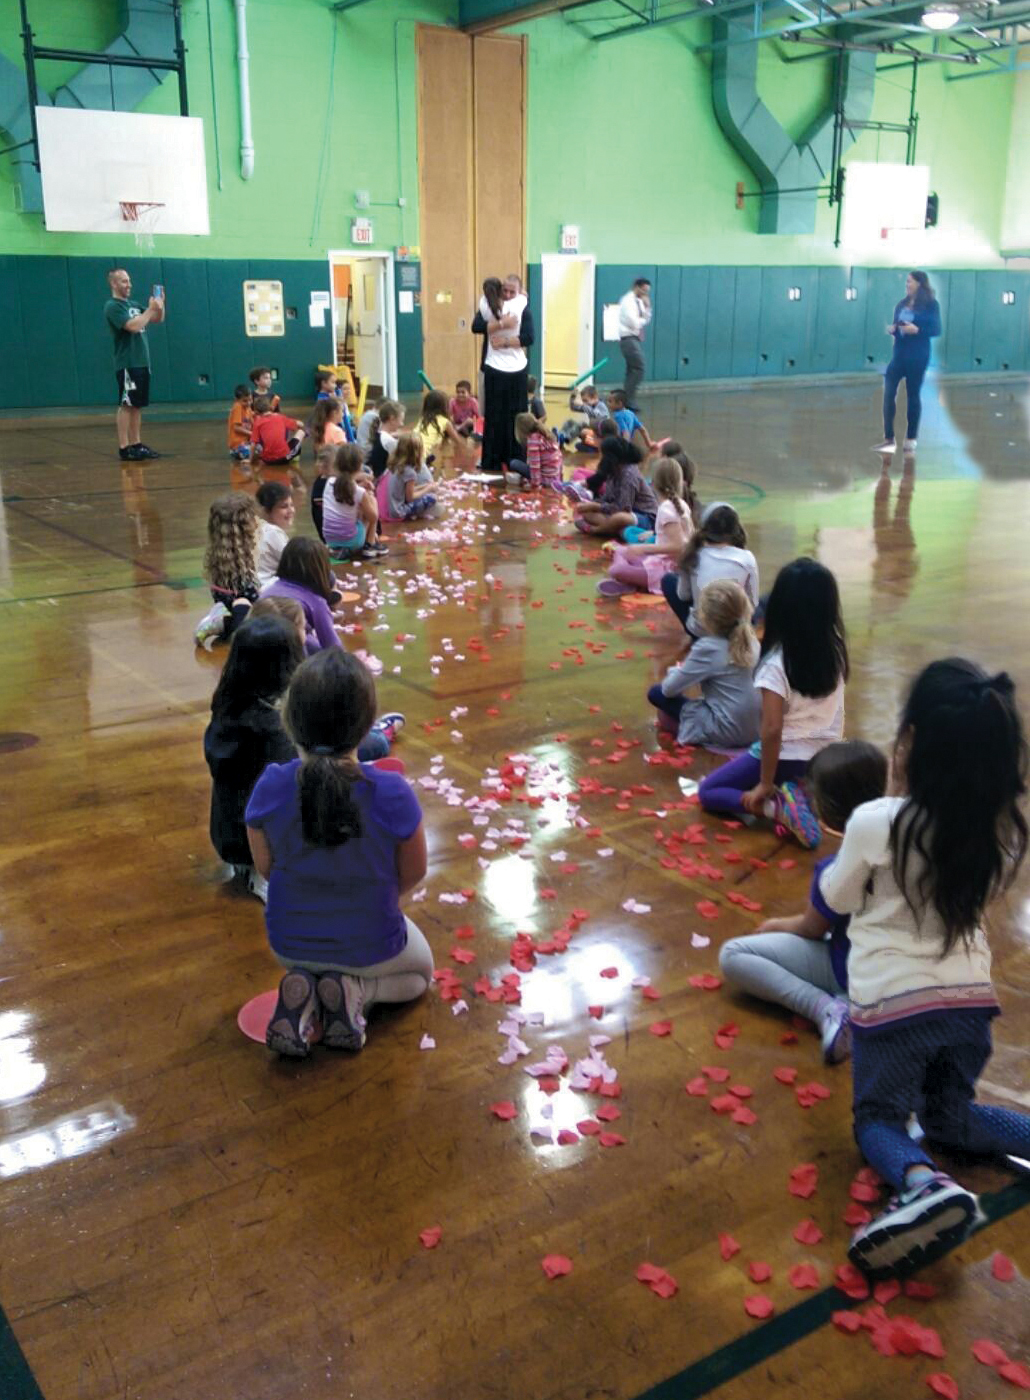 The proposal ... and the rose petal-lined gym floor with her students